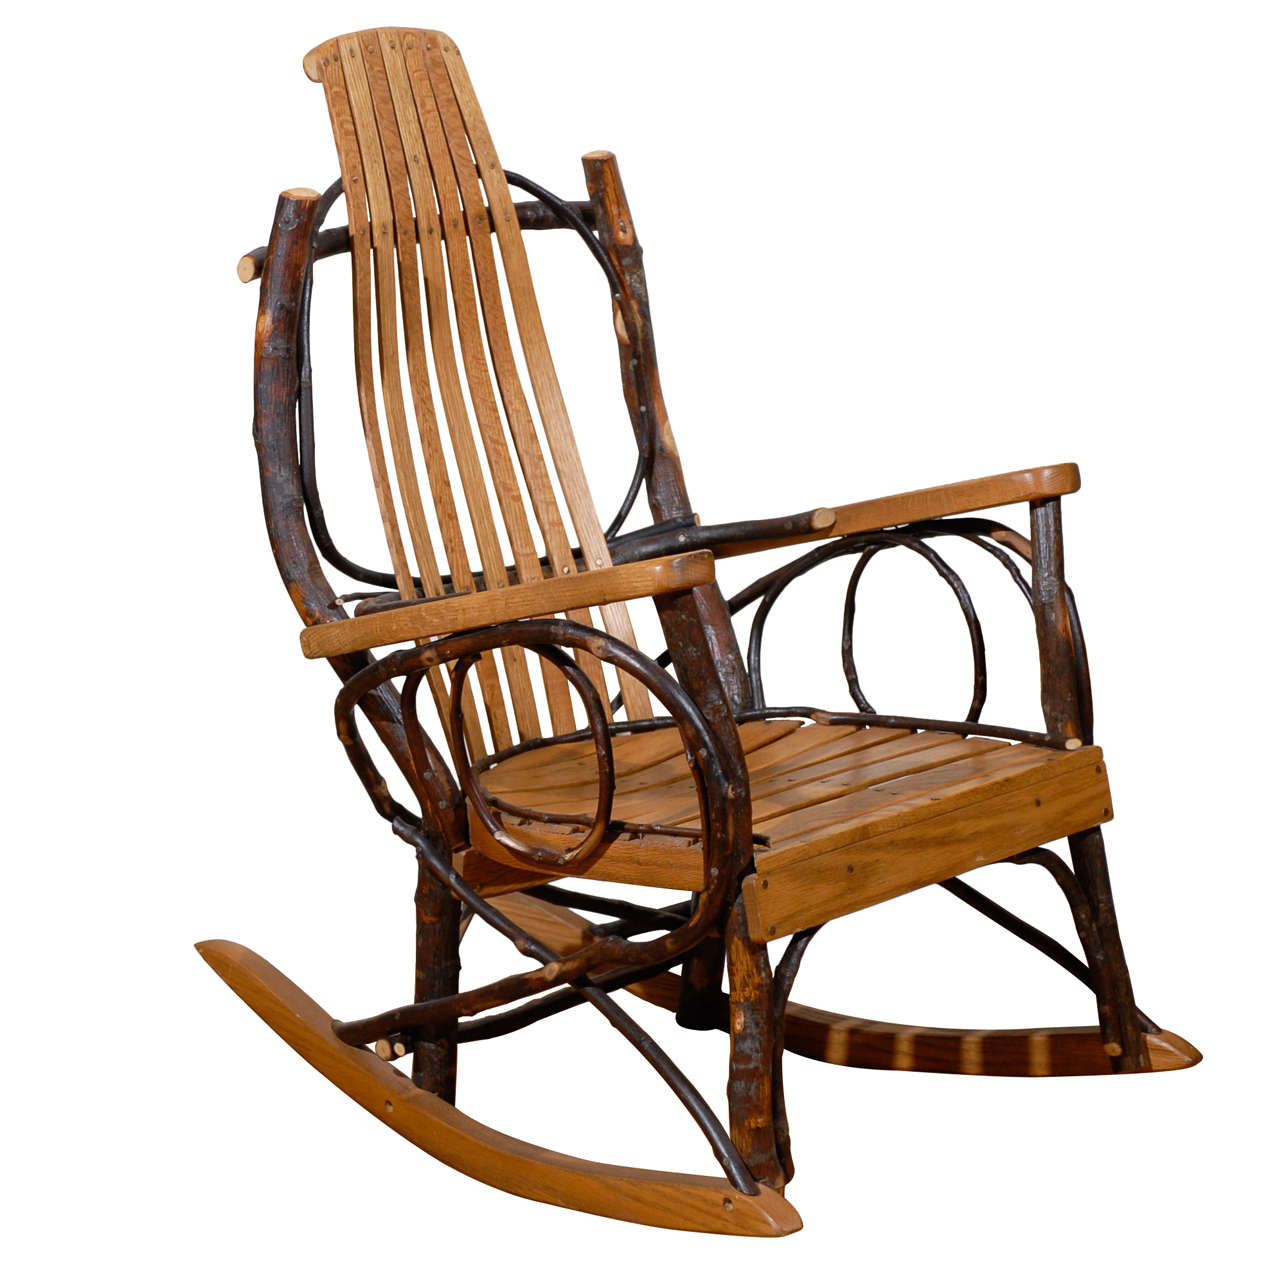 This Original Amish Rocking Chair is no longer available.